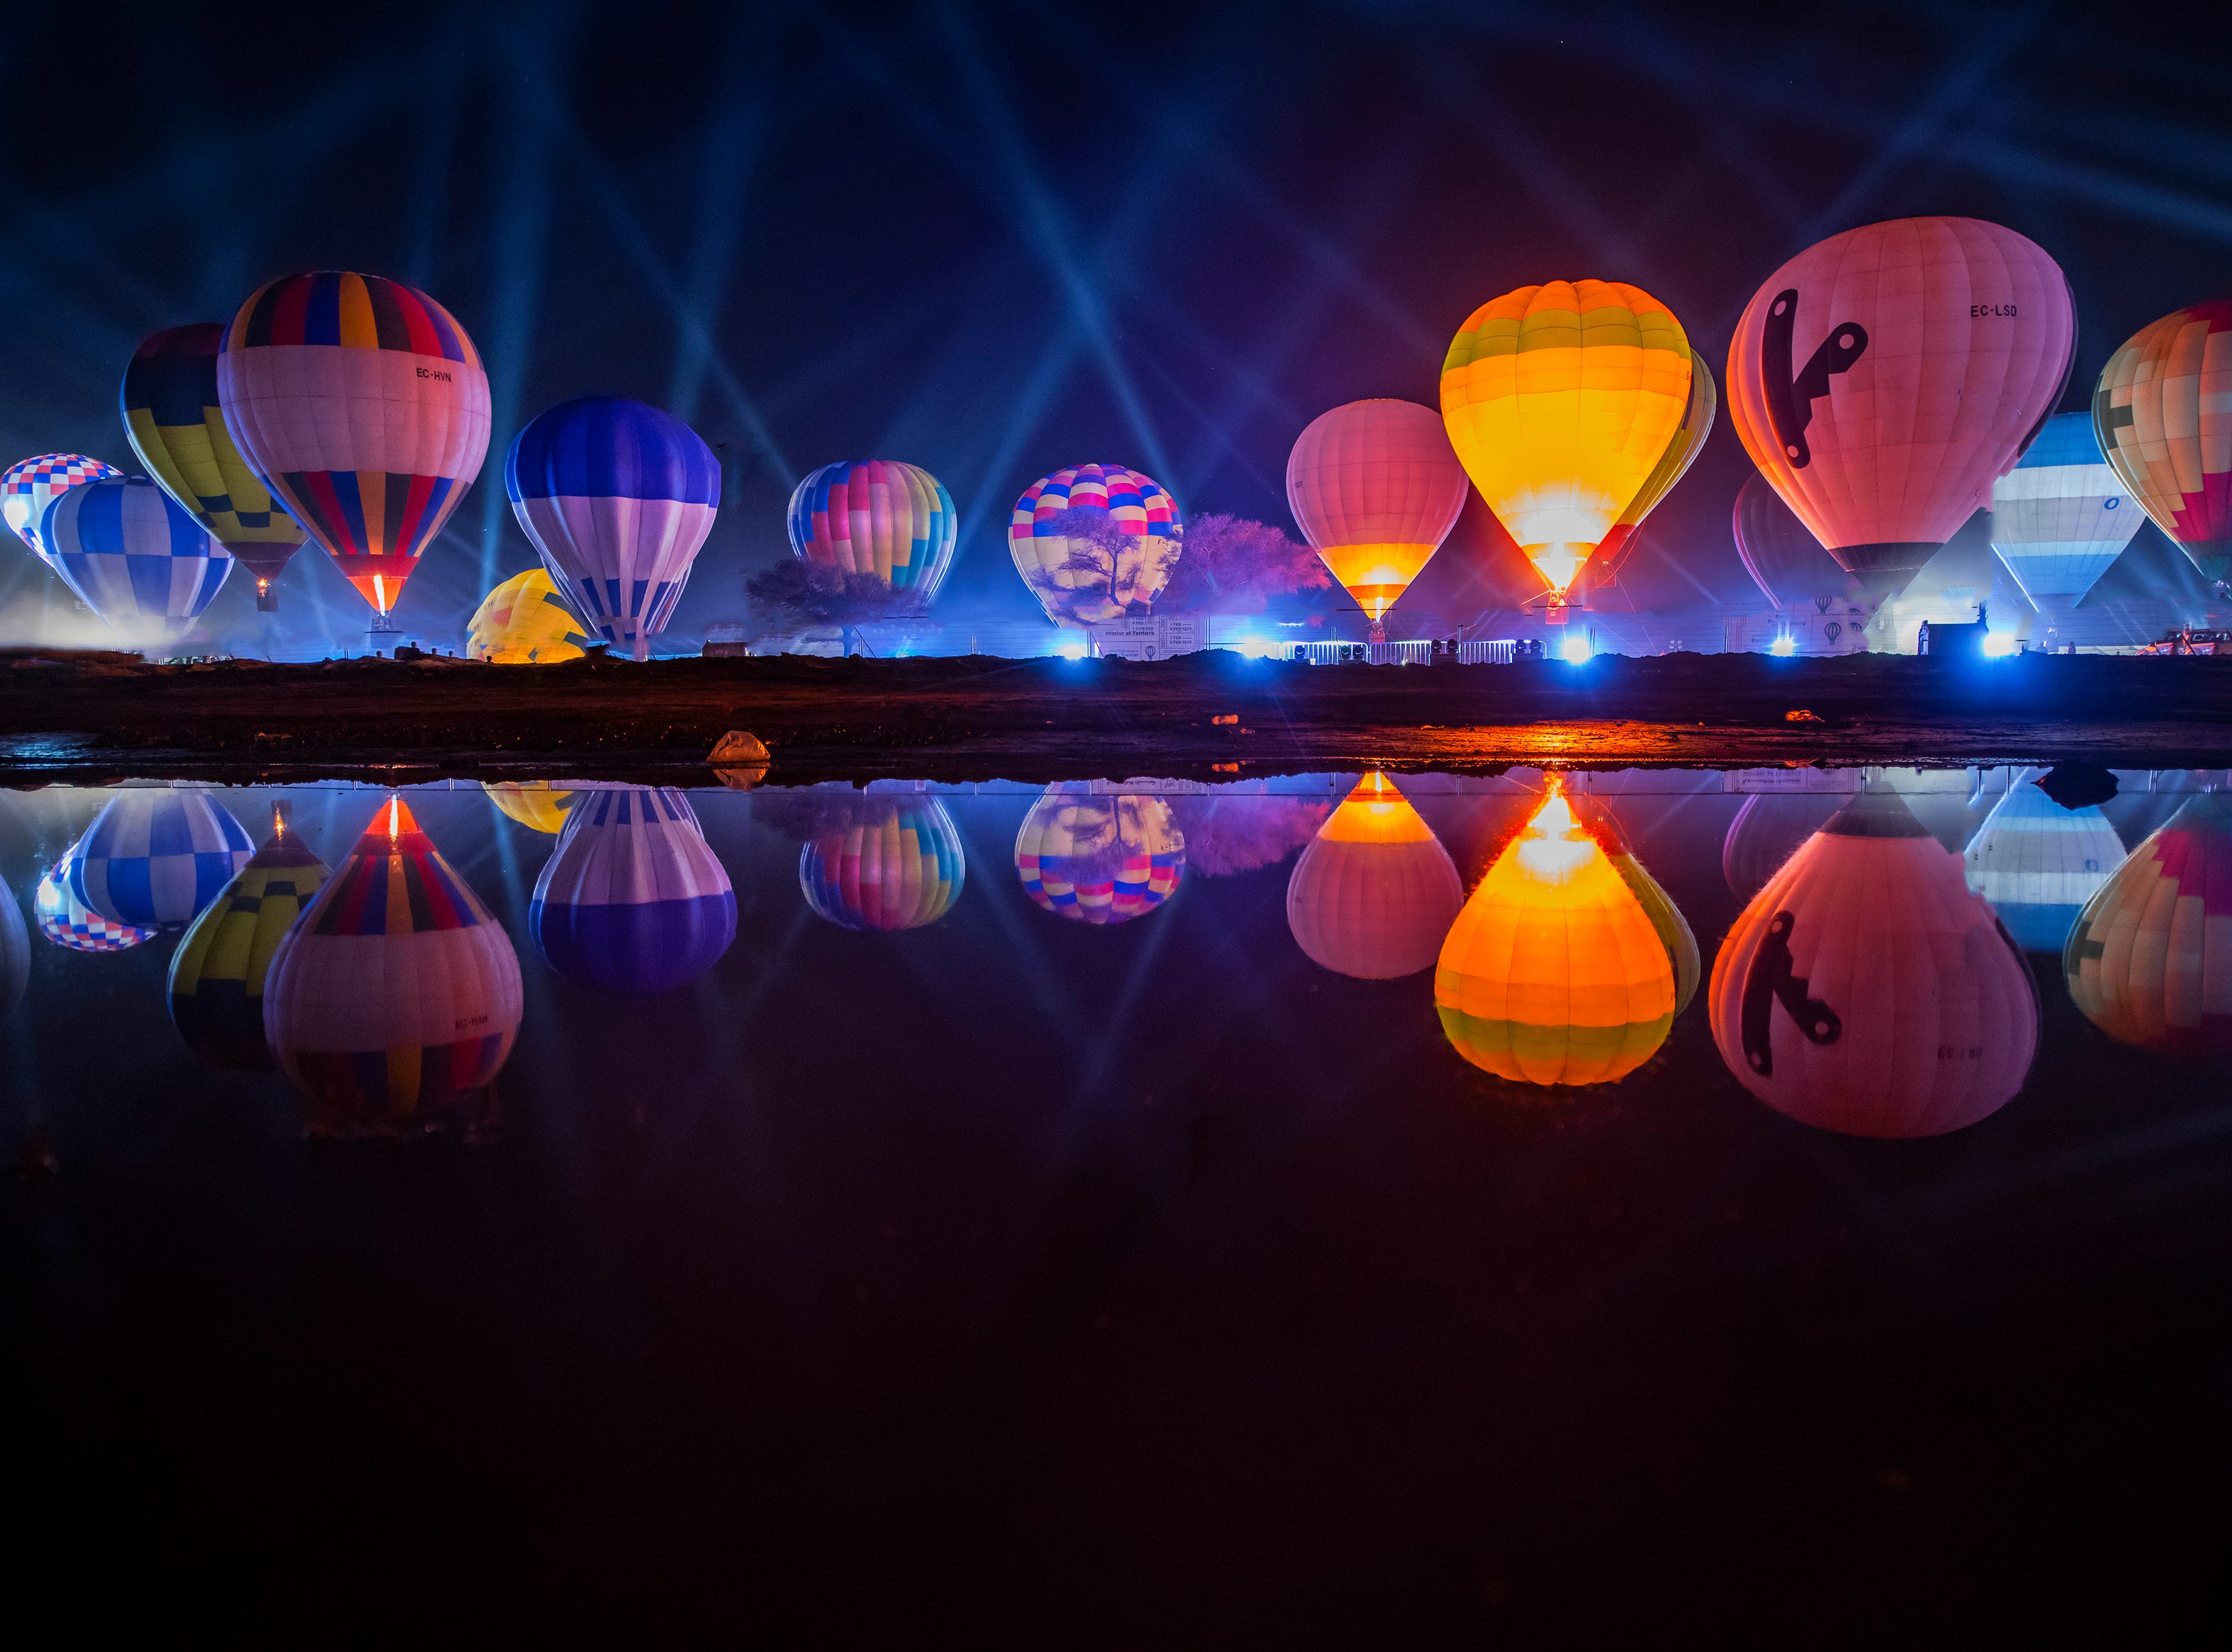 """A scene during the 2019 AlUla Balloon Festival part of Winter at Tantora in Al-Ula, Saudi Arabia. Sixty hot air balloons took to the sky in the region, offering rides to festivalgoers and locals alike. Each night the balloons light up the night skies with a daily """"glow show."""""""